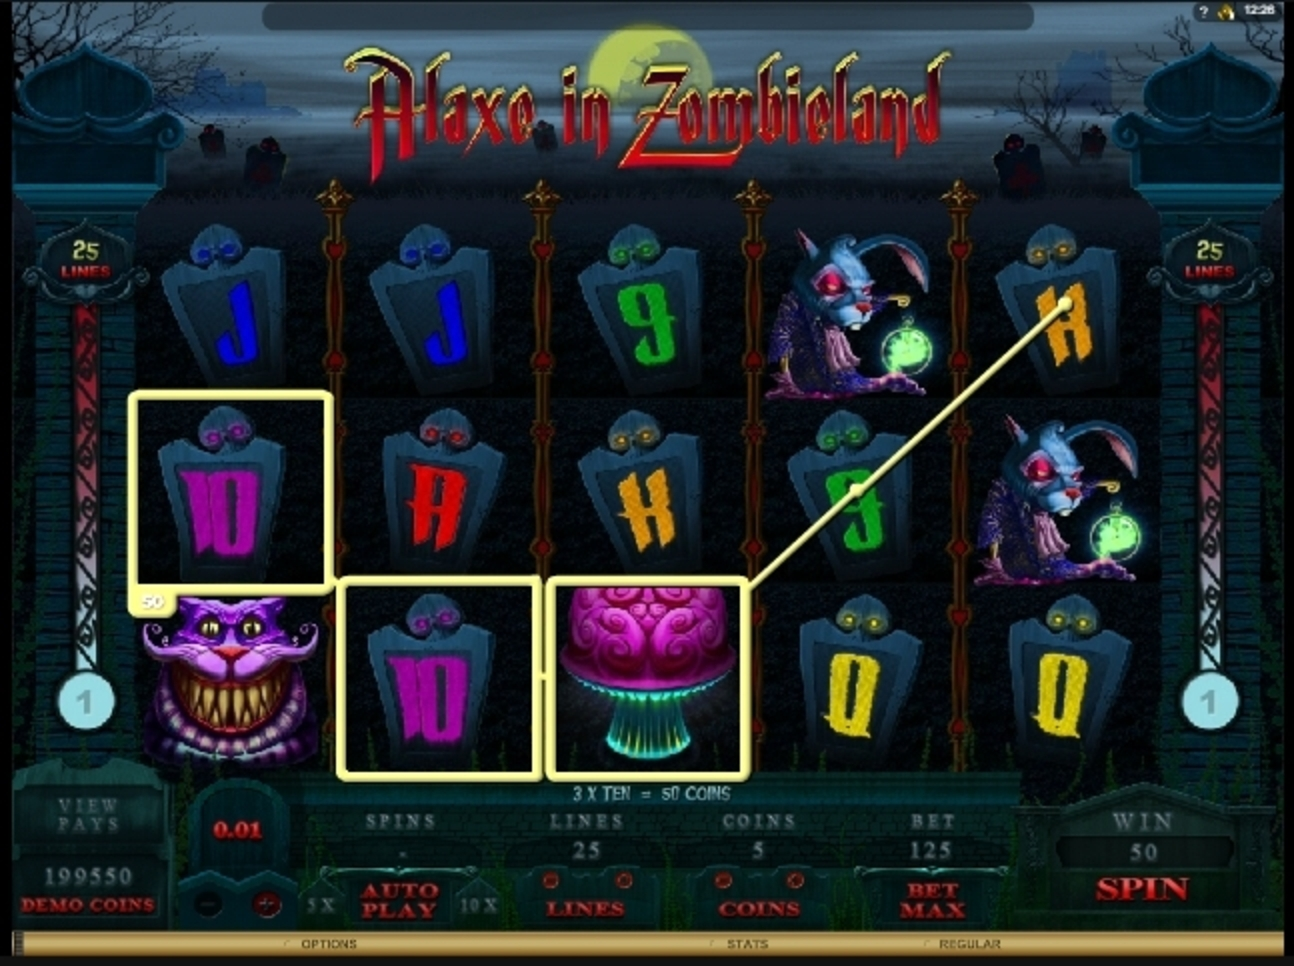 Win Money in Alaxe in Zombieland Free Slot Game by Microgaming